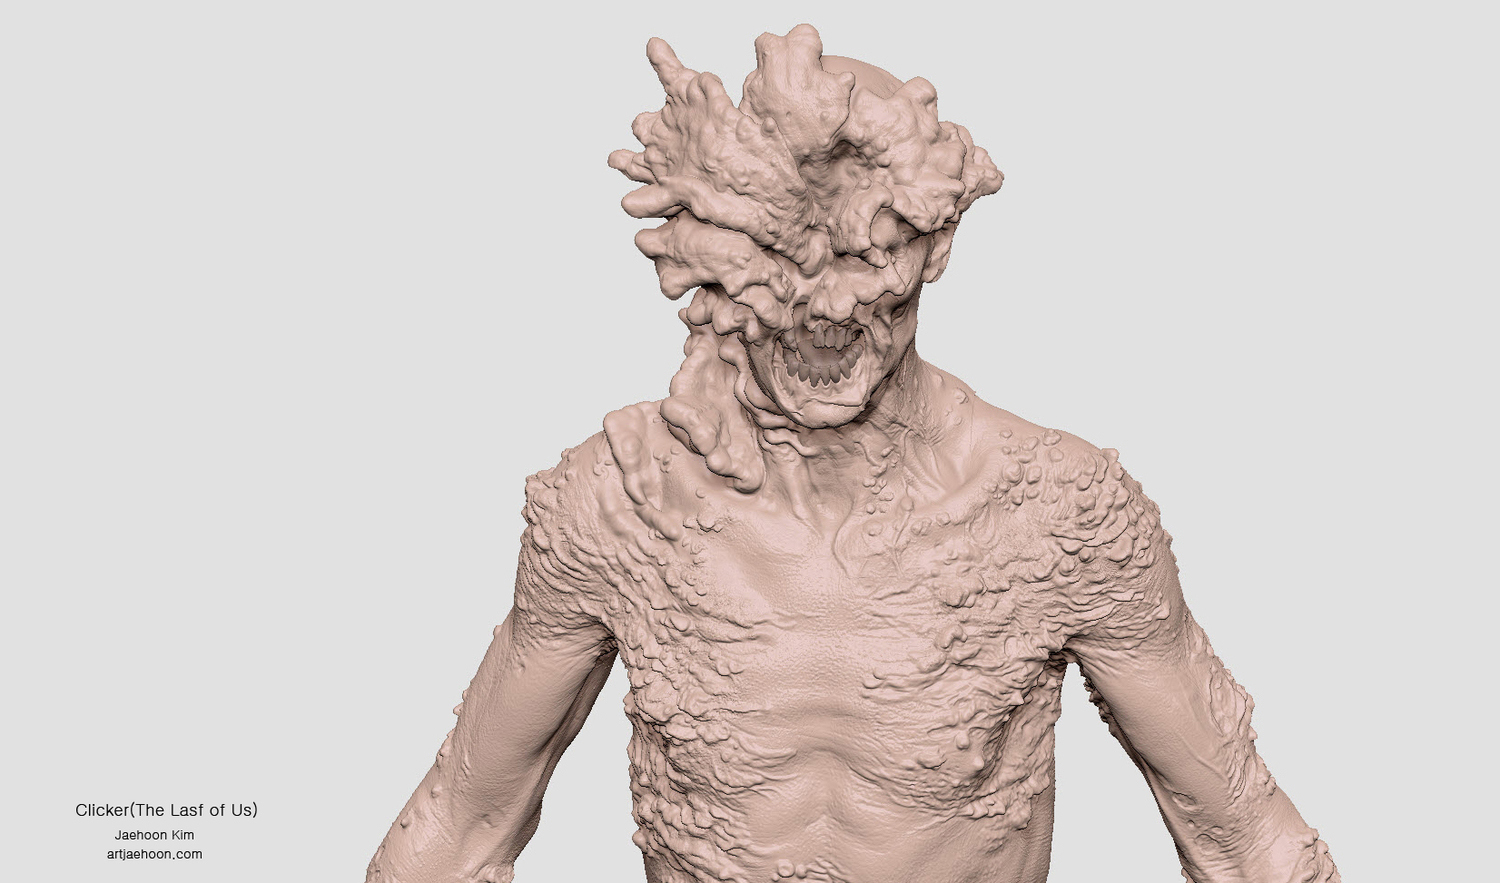 David sculpt image